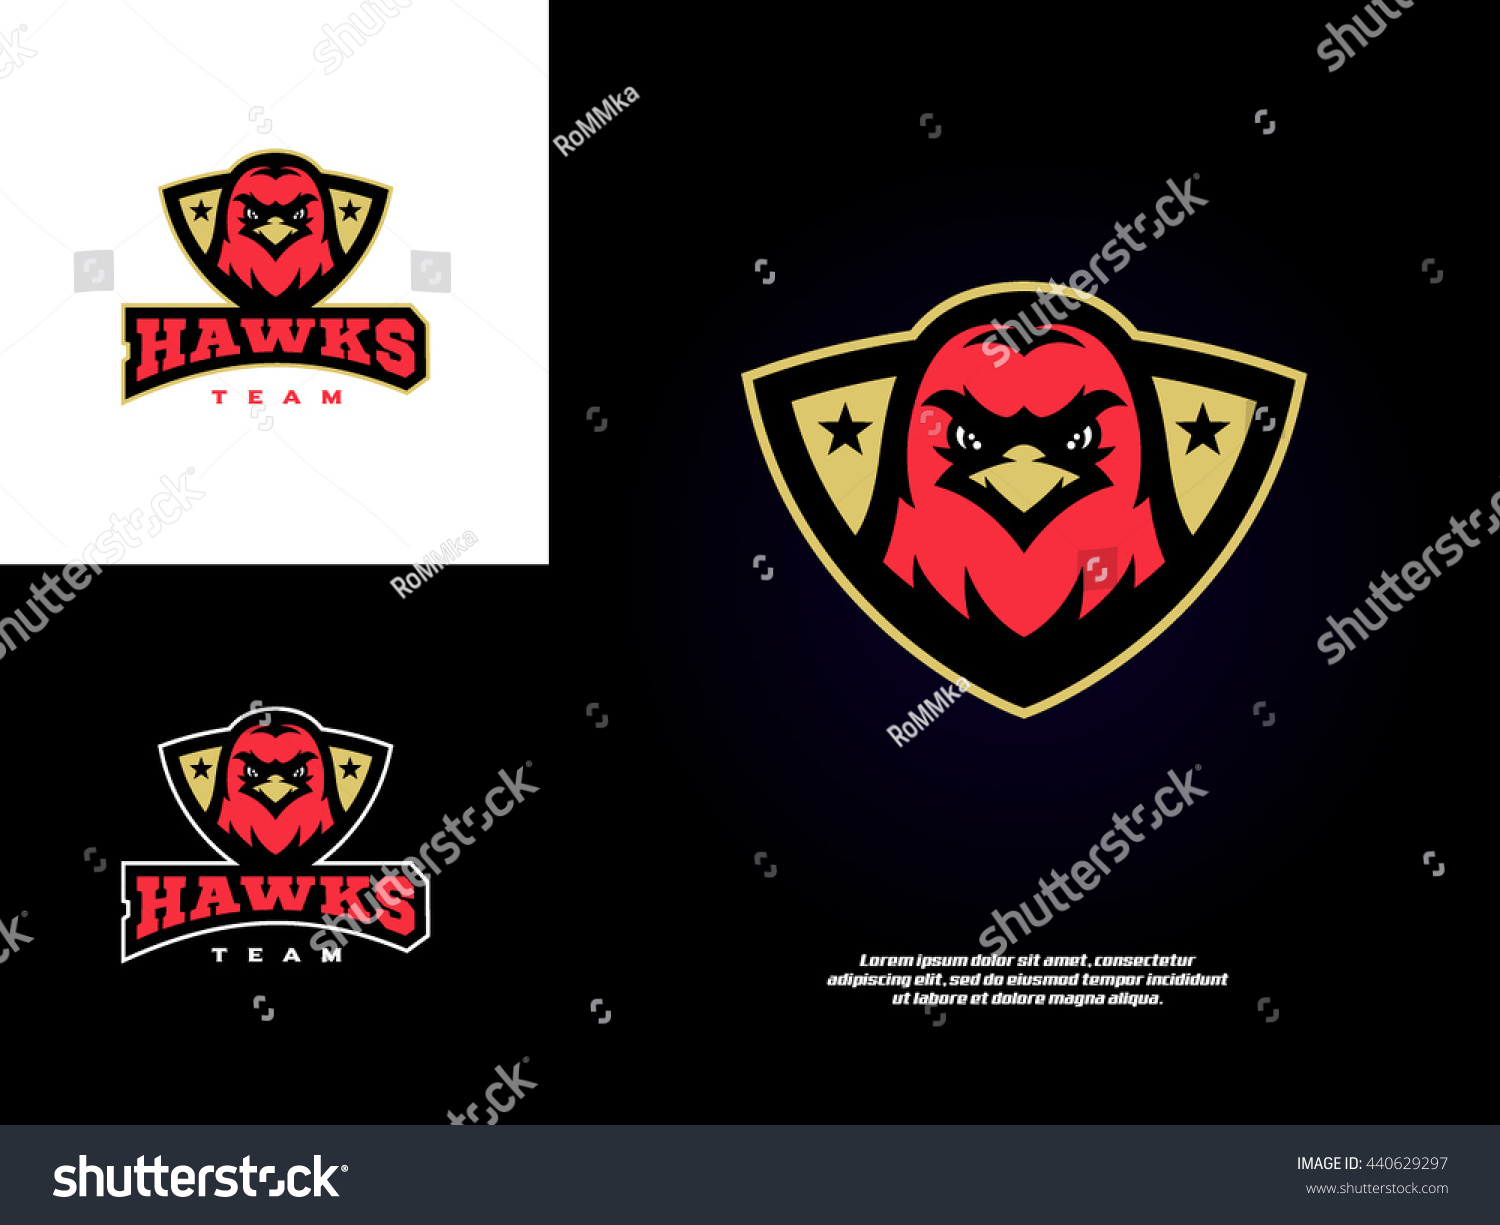 Original professional sports logo with a hawk eagle falcon